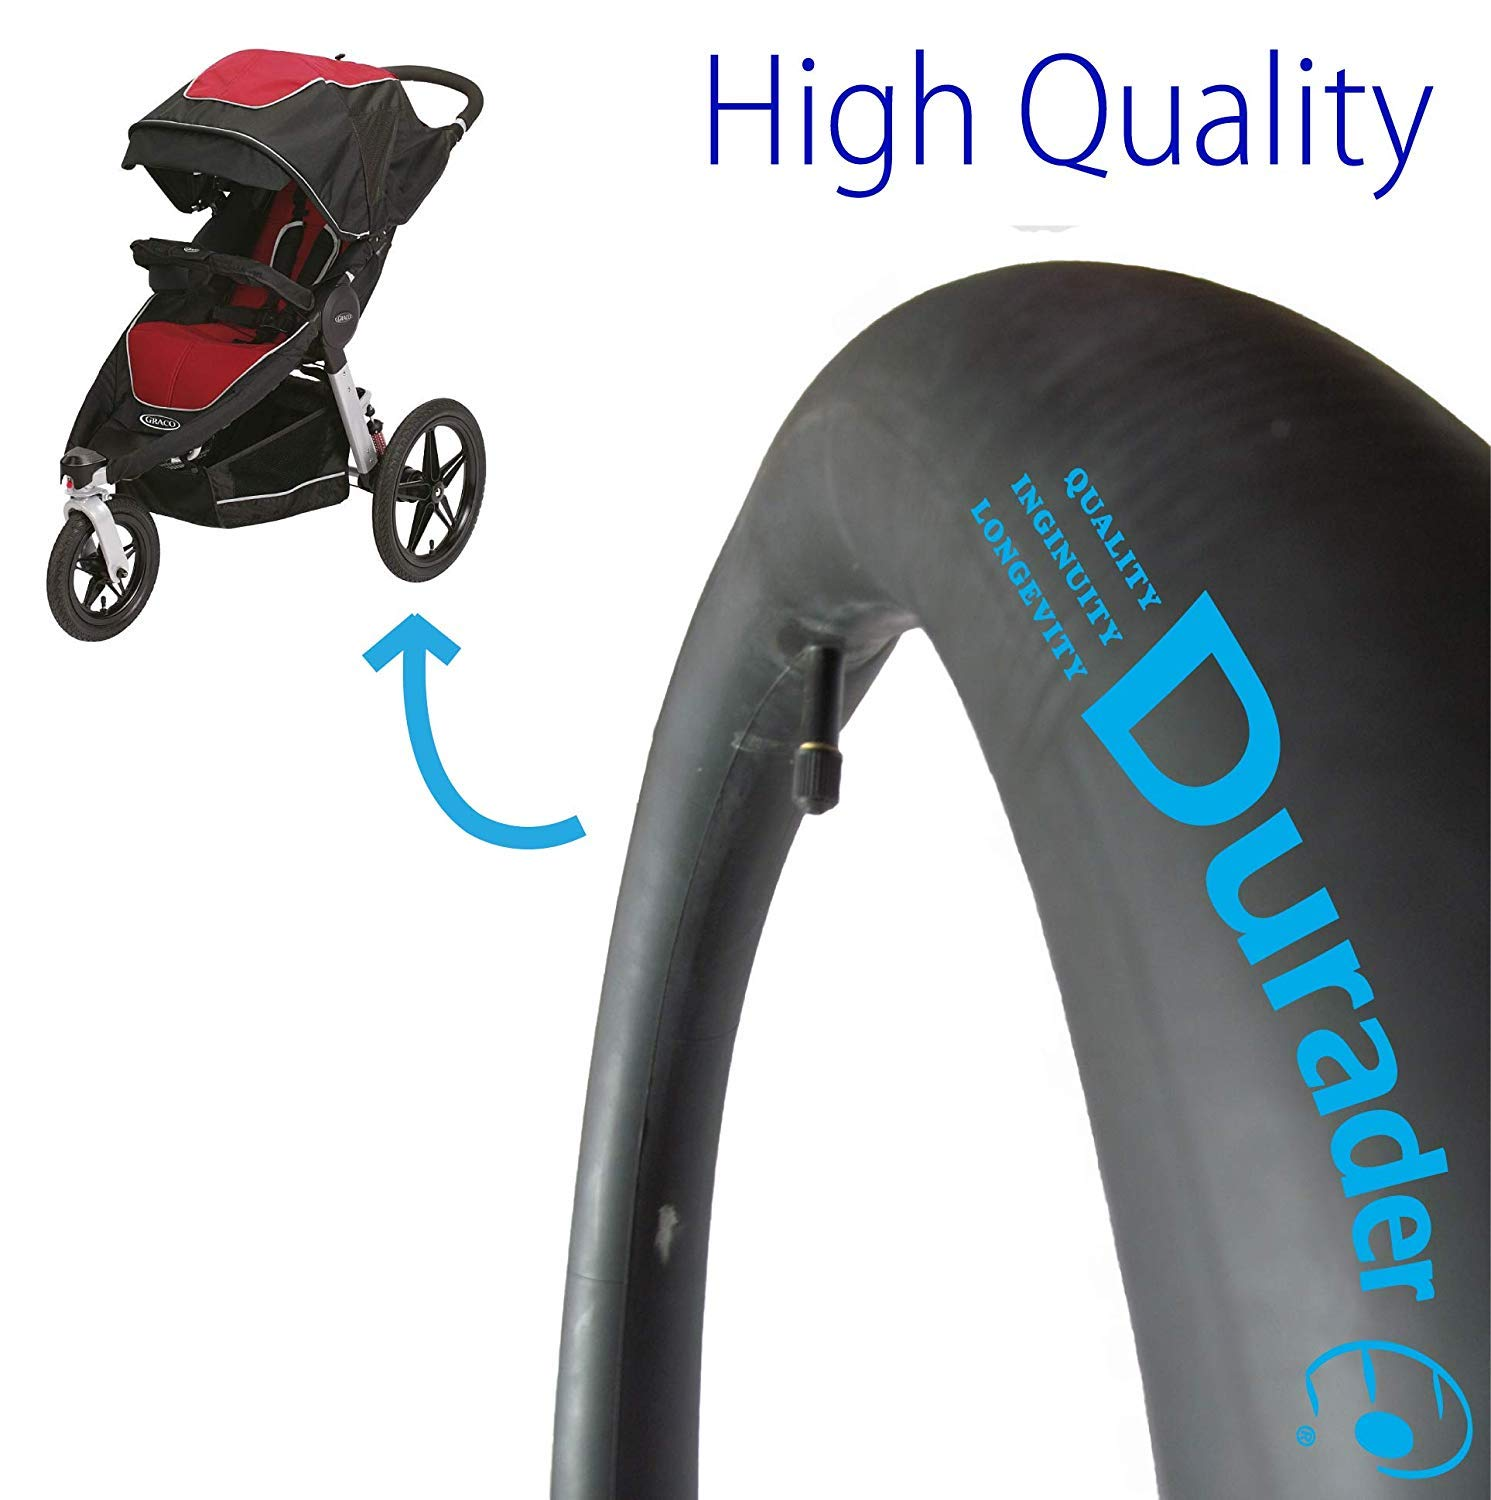 2X 16'' Straight Valve Inner Tubes Compatible with Graco Relay, Panther, Jaguar, Lynx, Cougar and FastAction Joggers Strollers